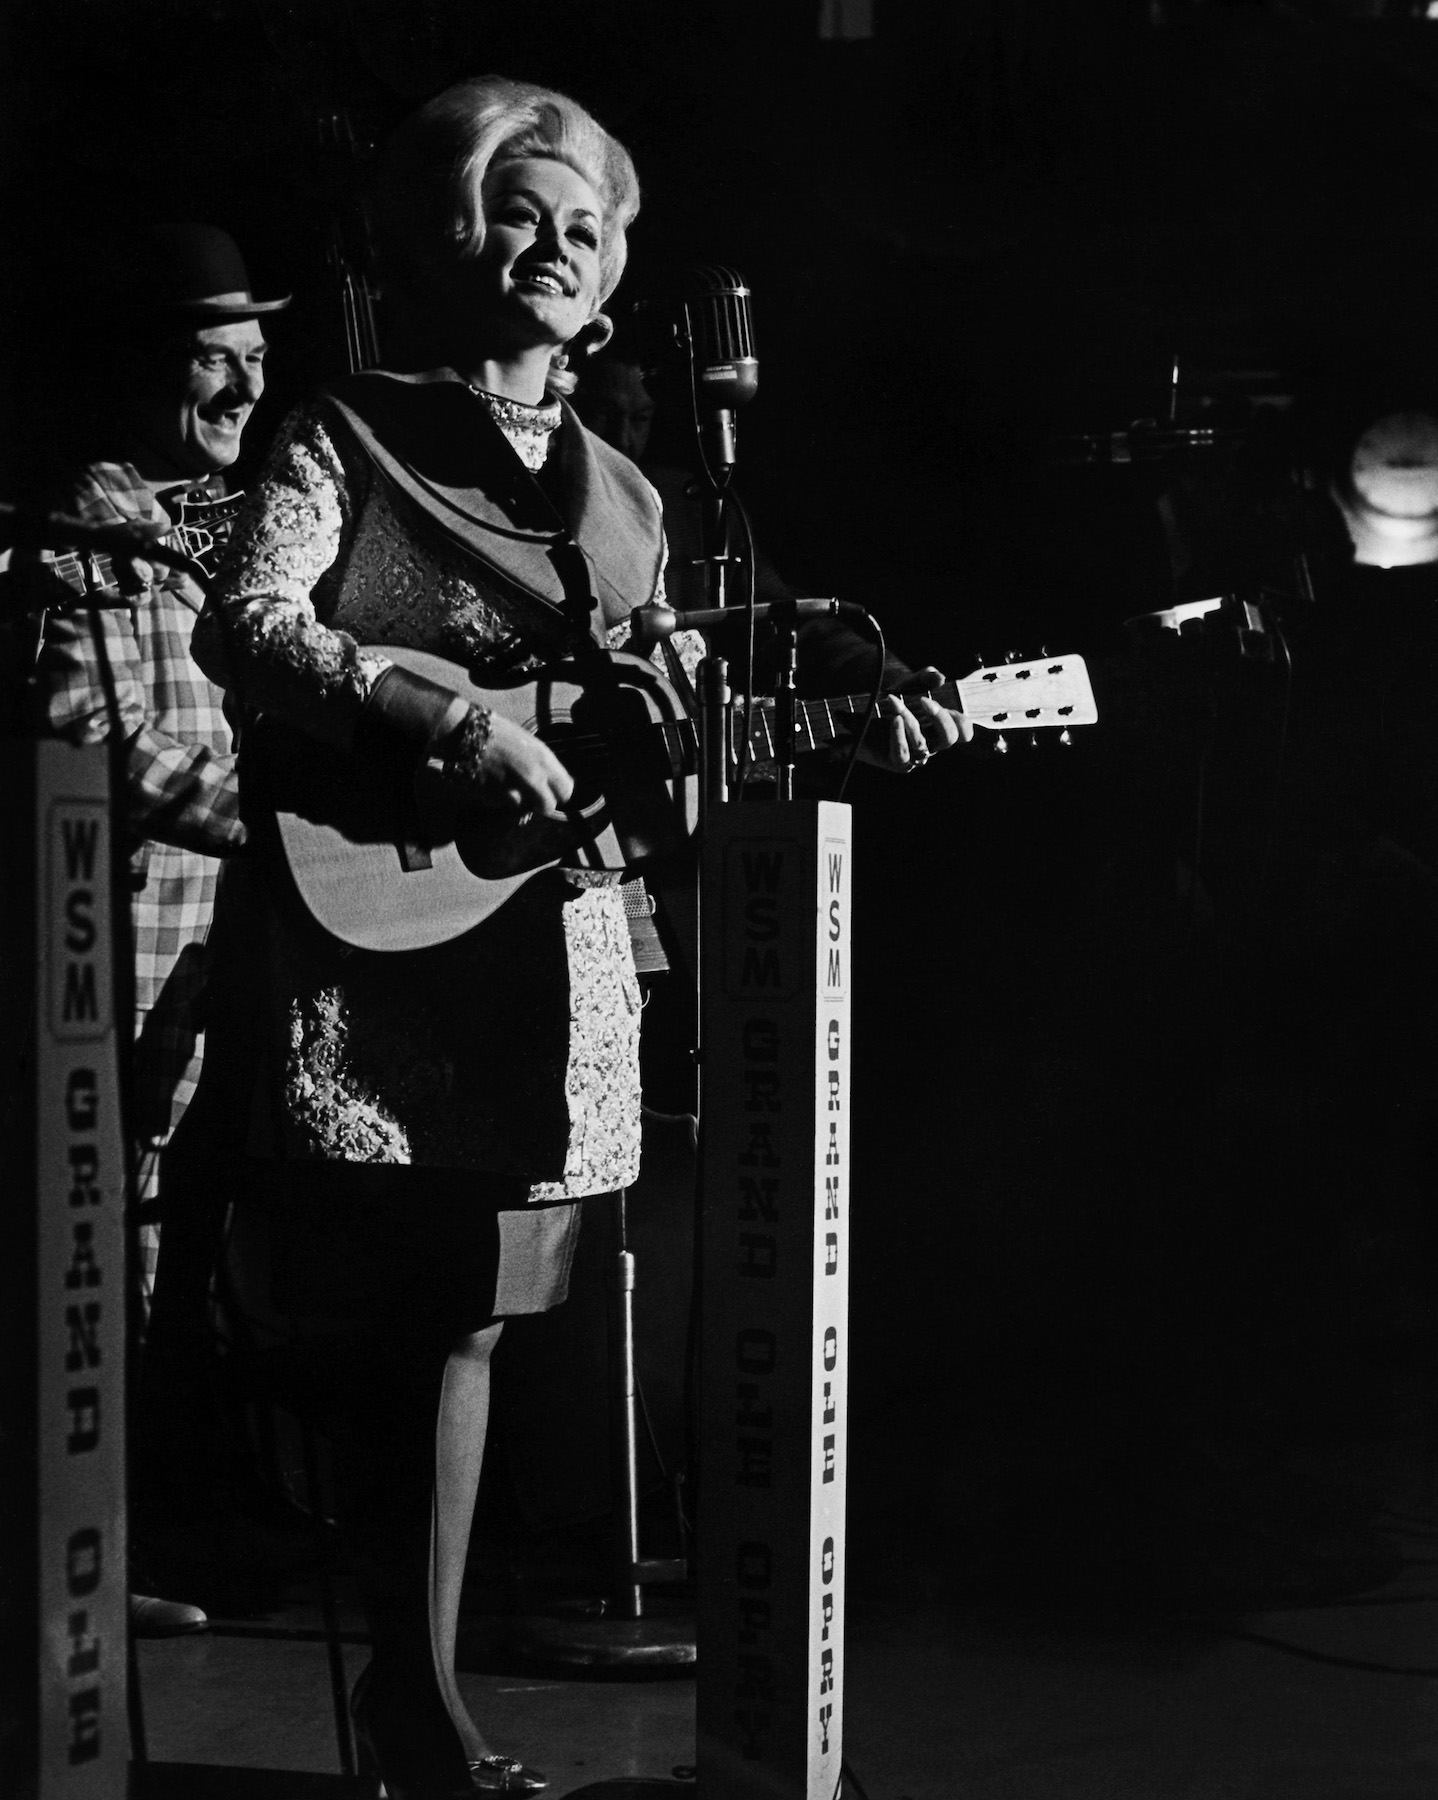 `Dolly Parton: 50 Years at the Grand Ole Opry`: Dolly Parton during her first appearance as a Grand Ole Opry member on Jan. 11, 1969. (Photo by Les Leverett/Grand Ole Opry; courtesy of NBC)